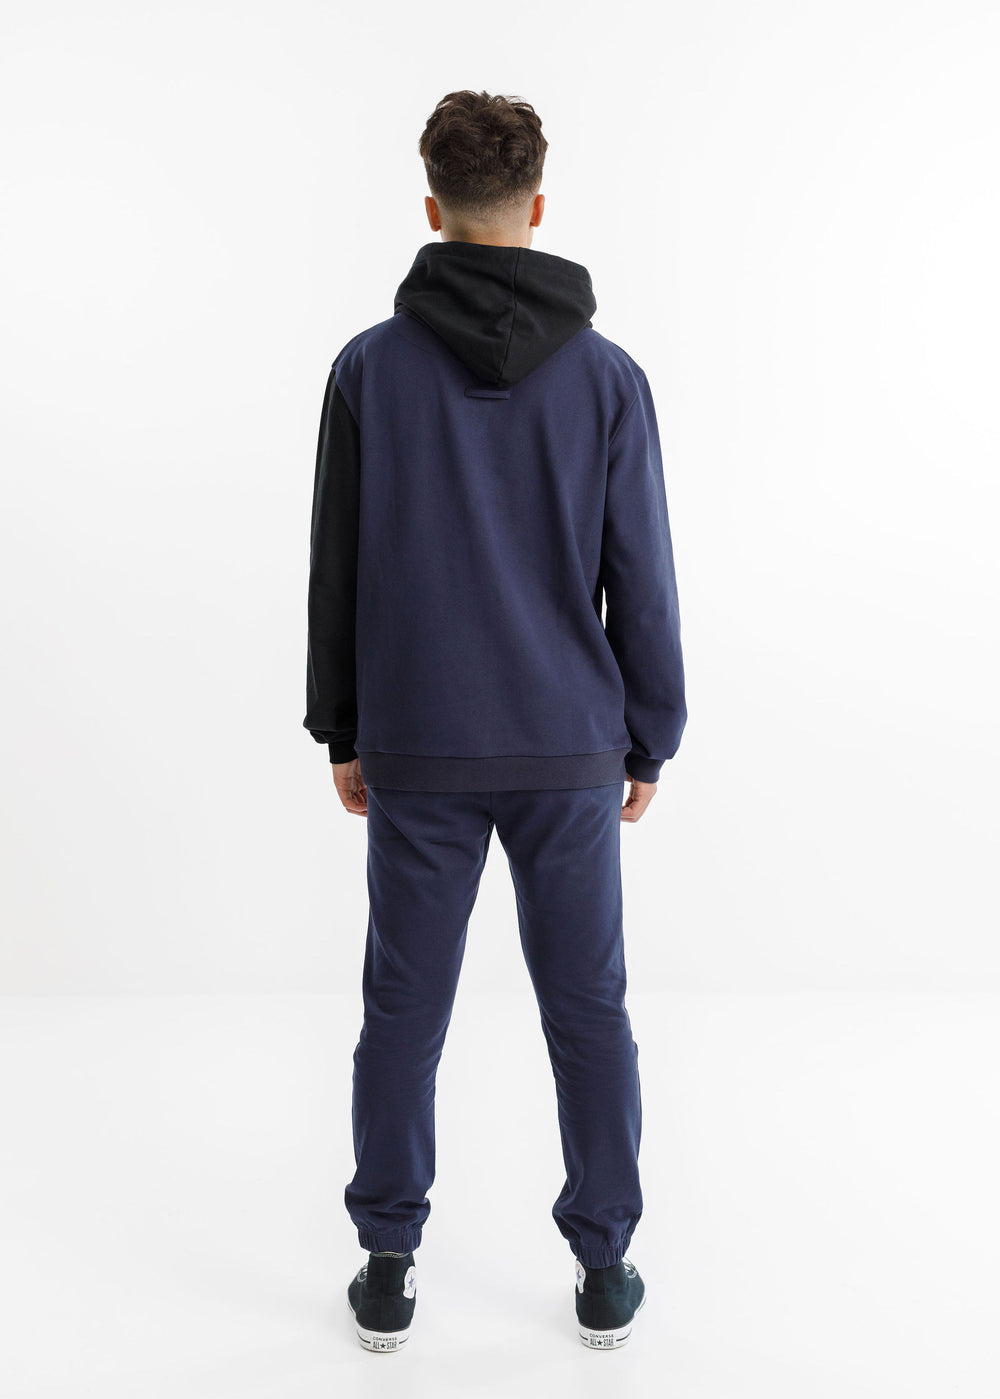 NIGHT TRACKIE - Navy